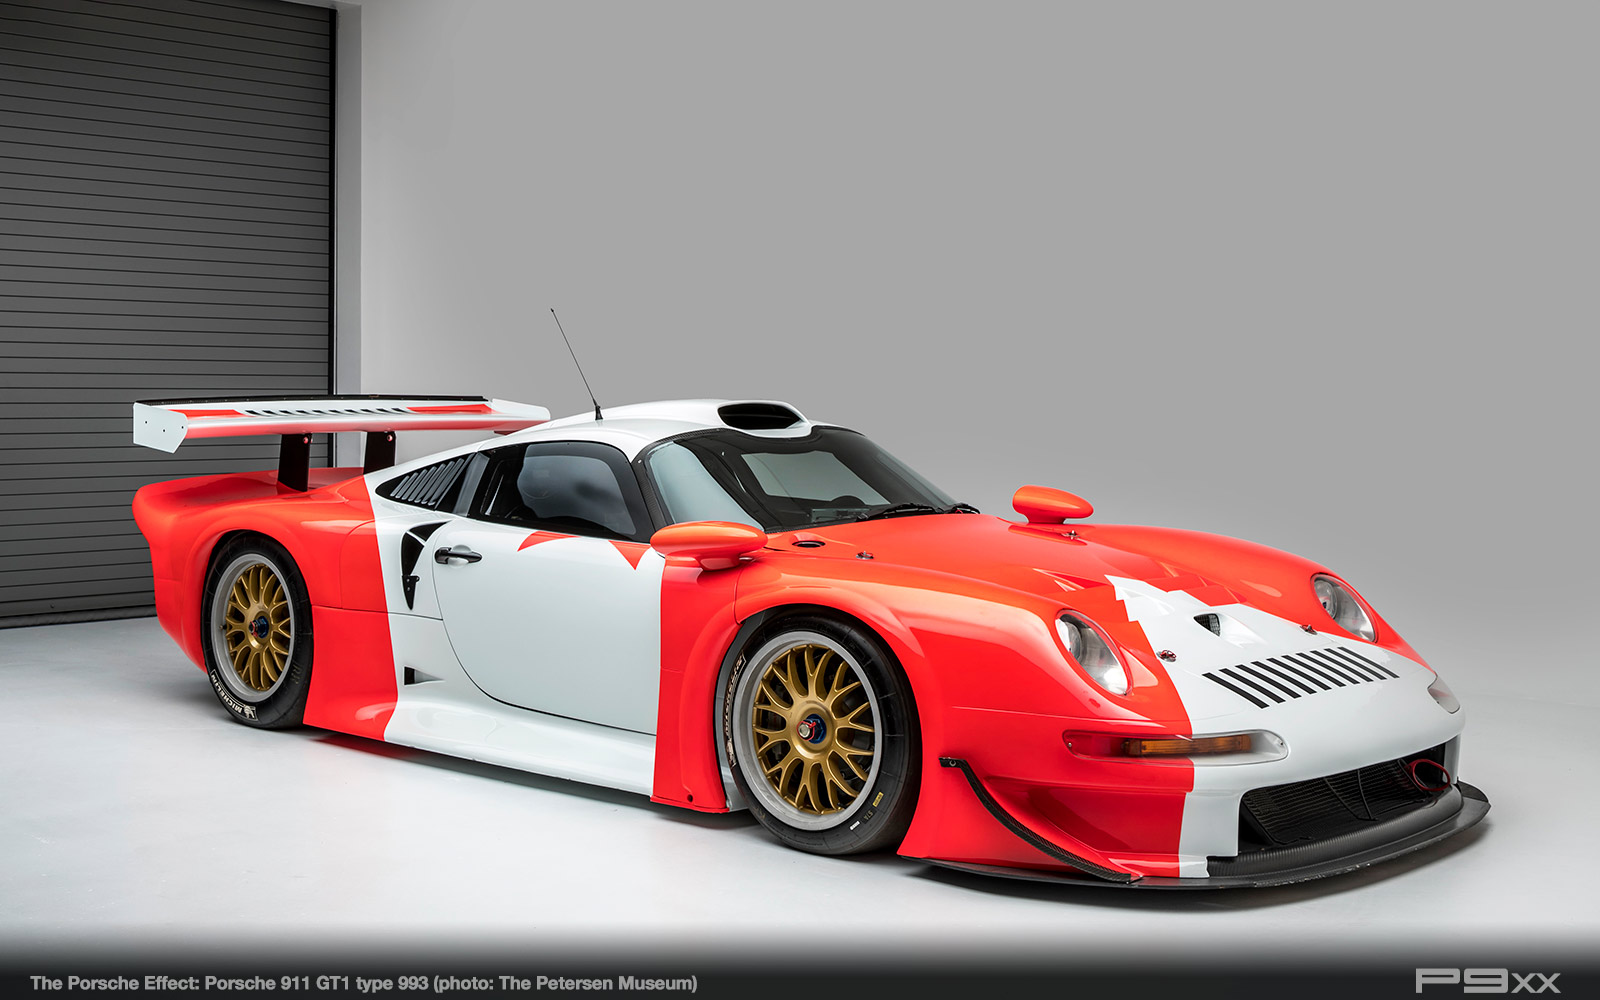 911-GT1-993-Petersen-Automotive-Museum-The-Porsche-Effect-294